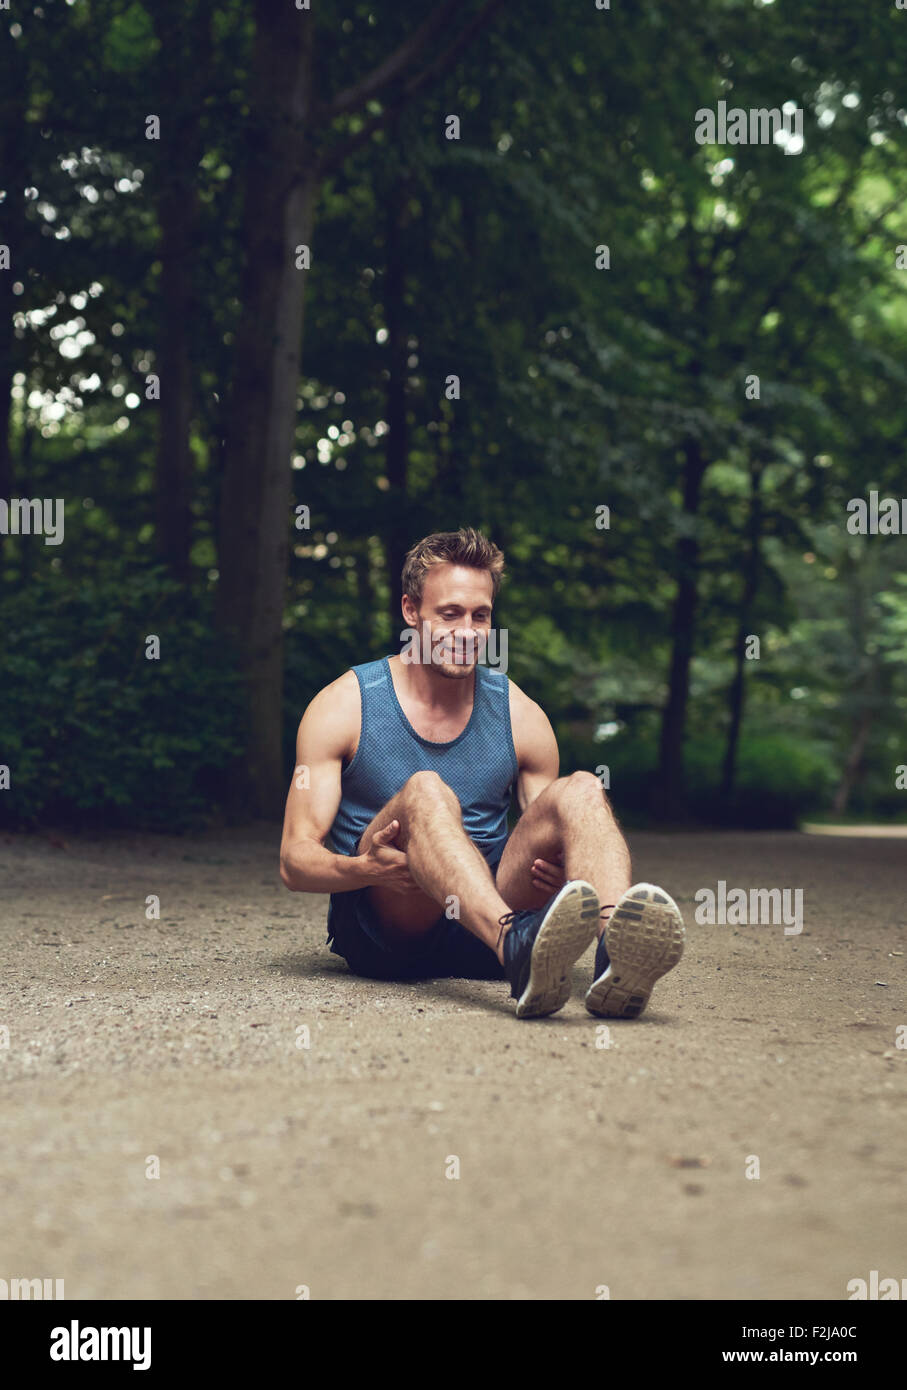 Athletic Young Man Sitting on the Ground at the Park and Flexing his Legs as Warm-up Exercise, with Happy Facial - Stock Image